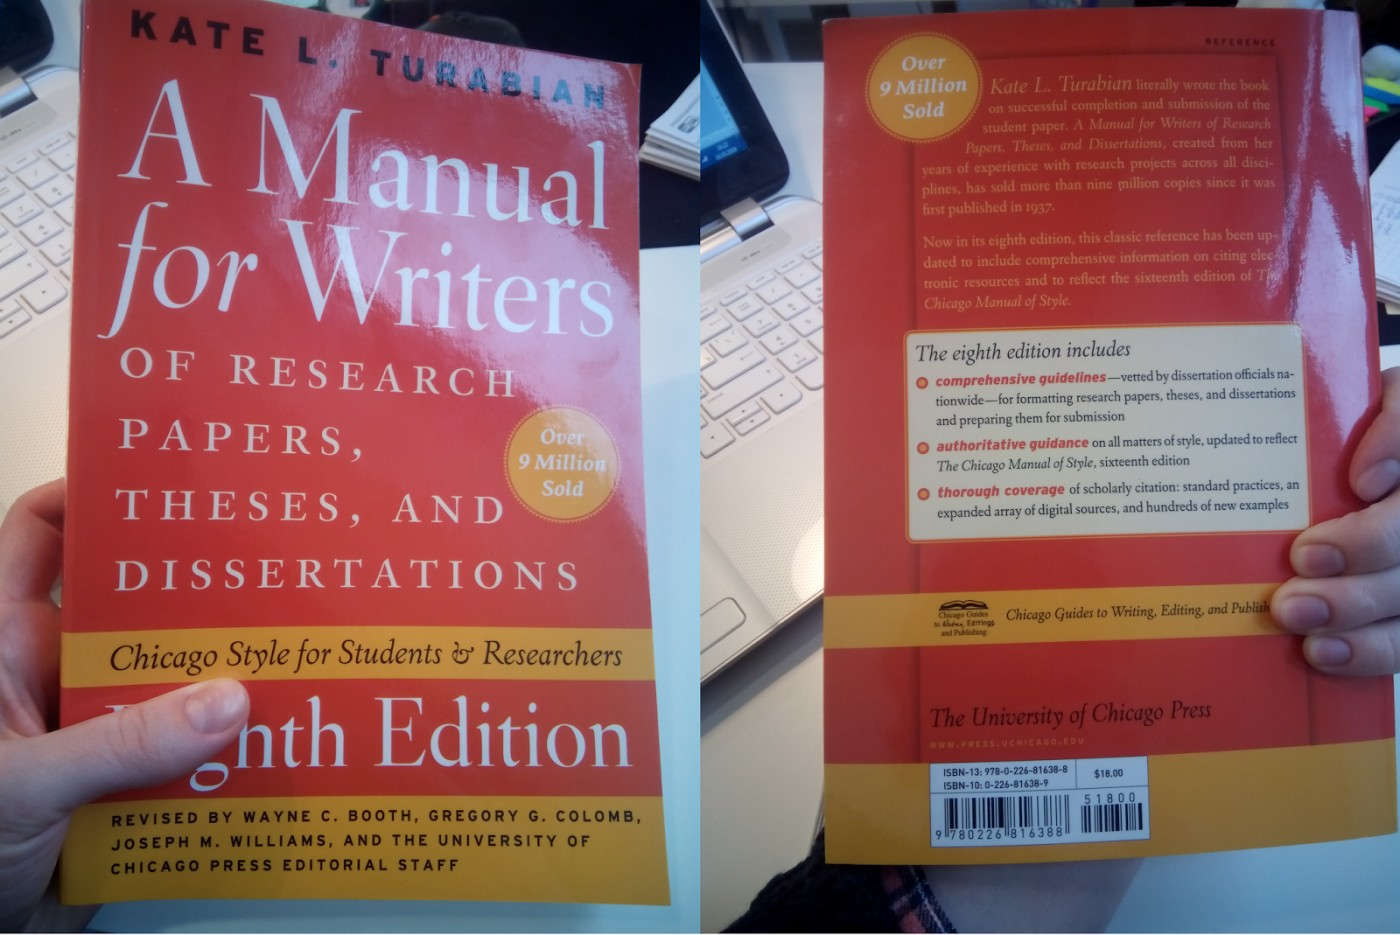 022 Manual For Writers Of Research Papers Theses And Dissertations Paper Sensational A 8th Edition Pdf Eighth 1400